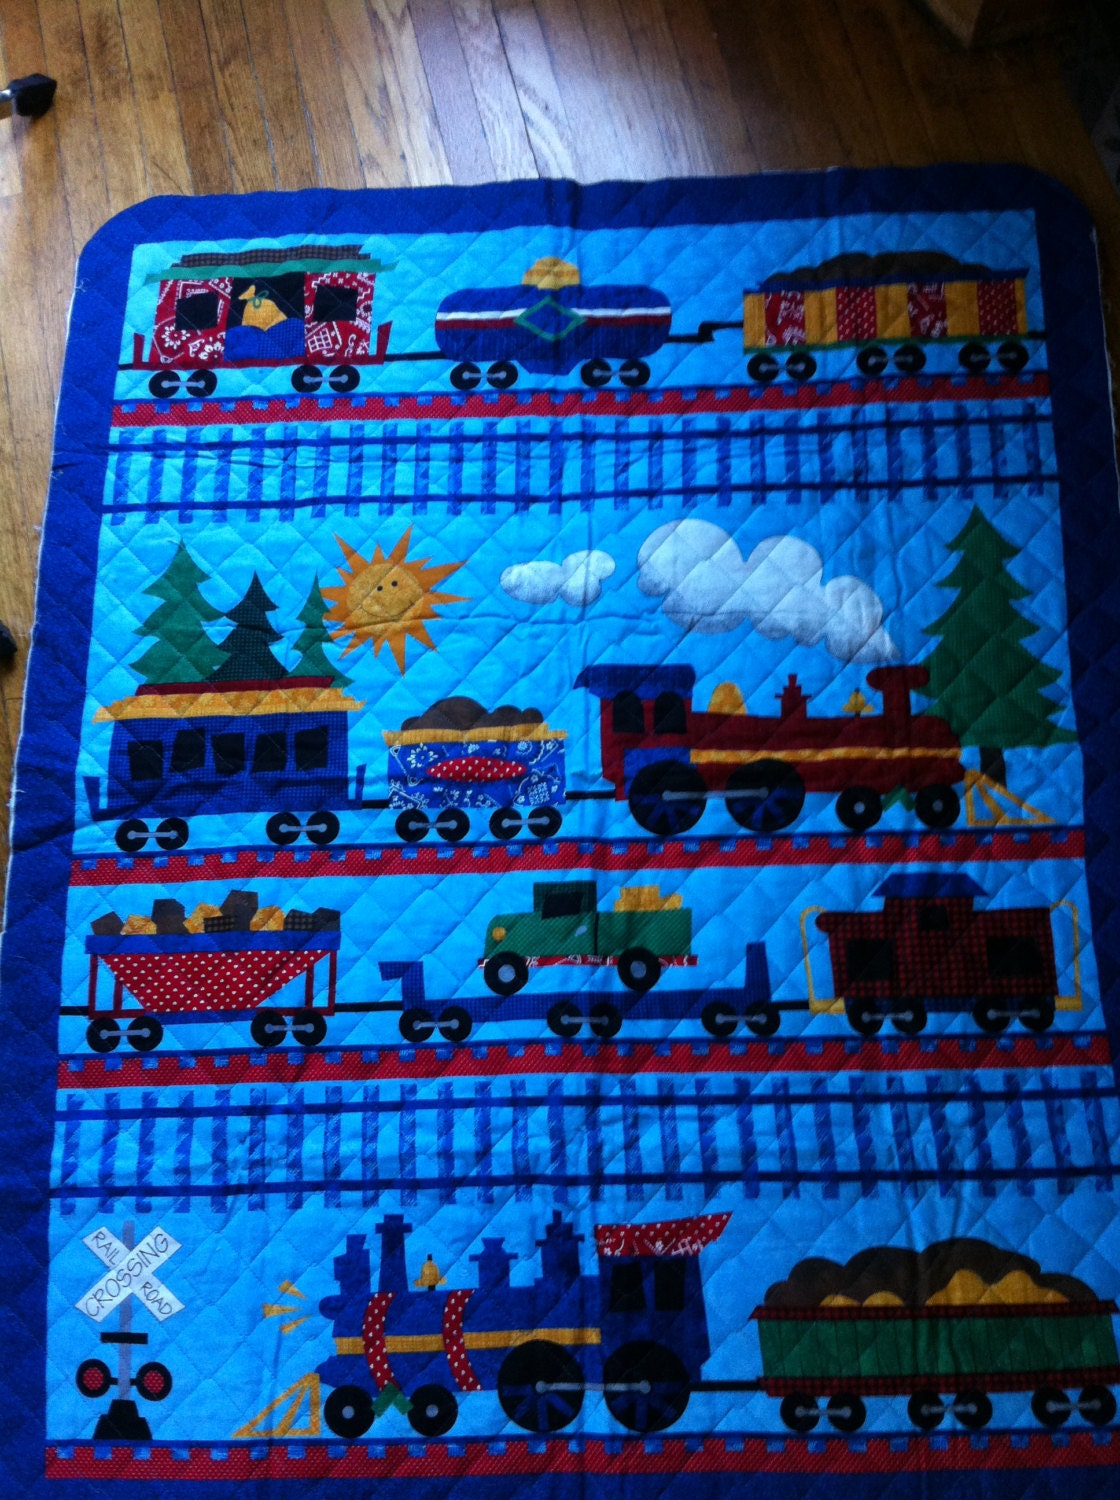 Train rr choo choo train quilt fabric panel 100 cotton fabric for Train print fabric